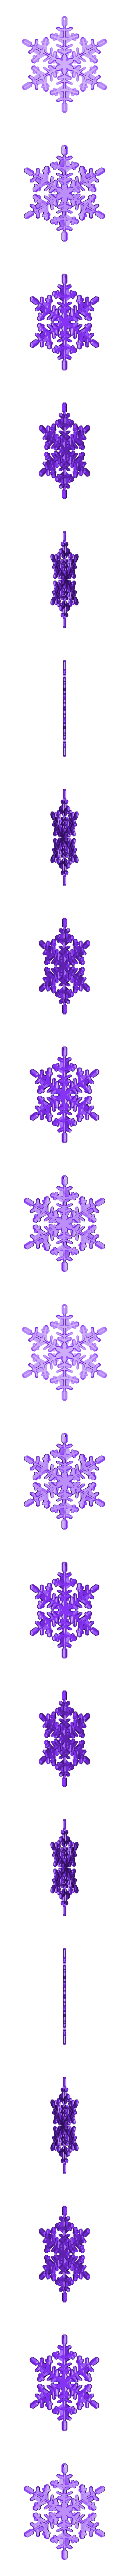 CT-Snowflake_FFF.stl Download free STL file Snowflake • 3D printable object, CreativeTools